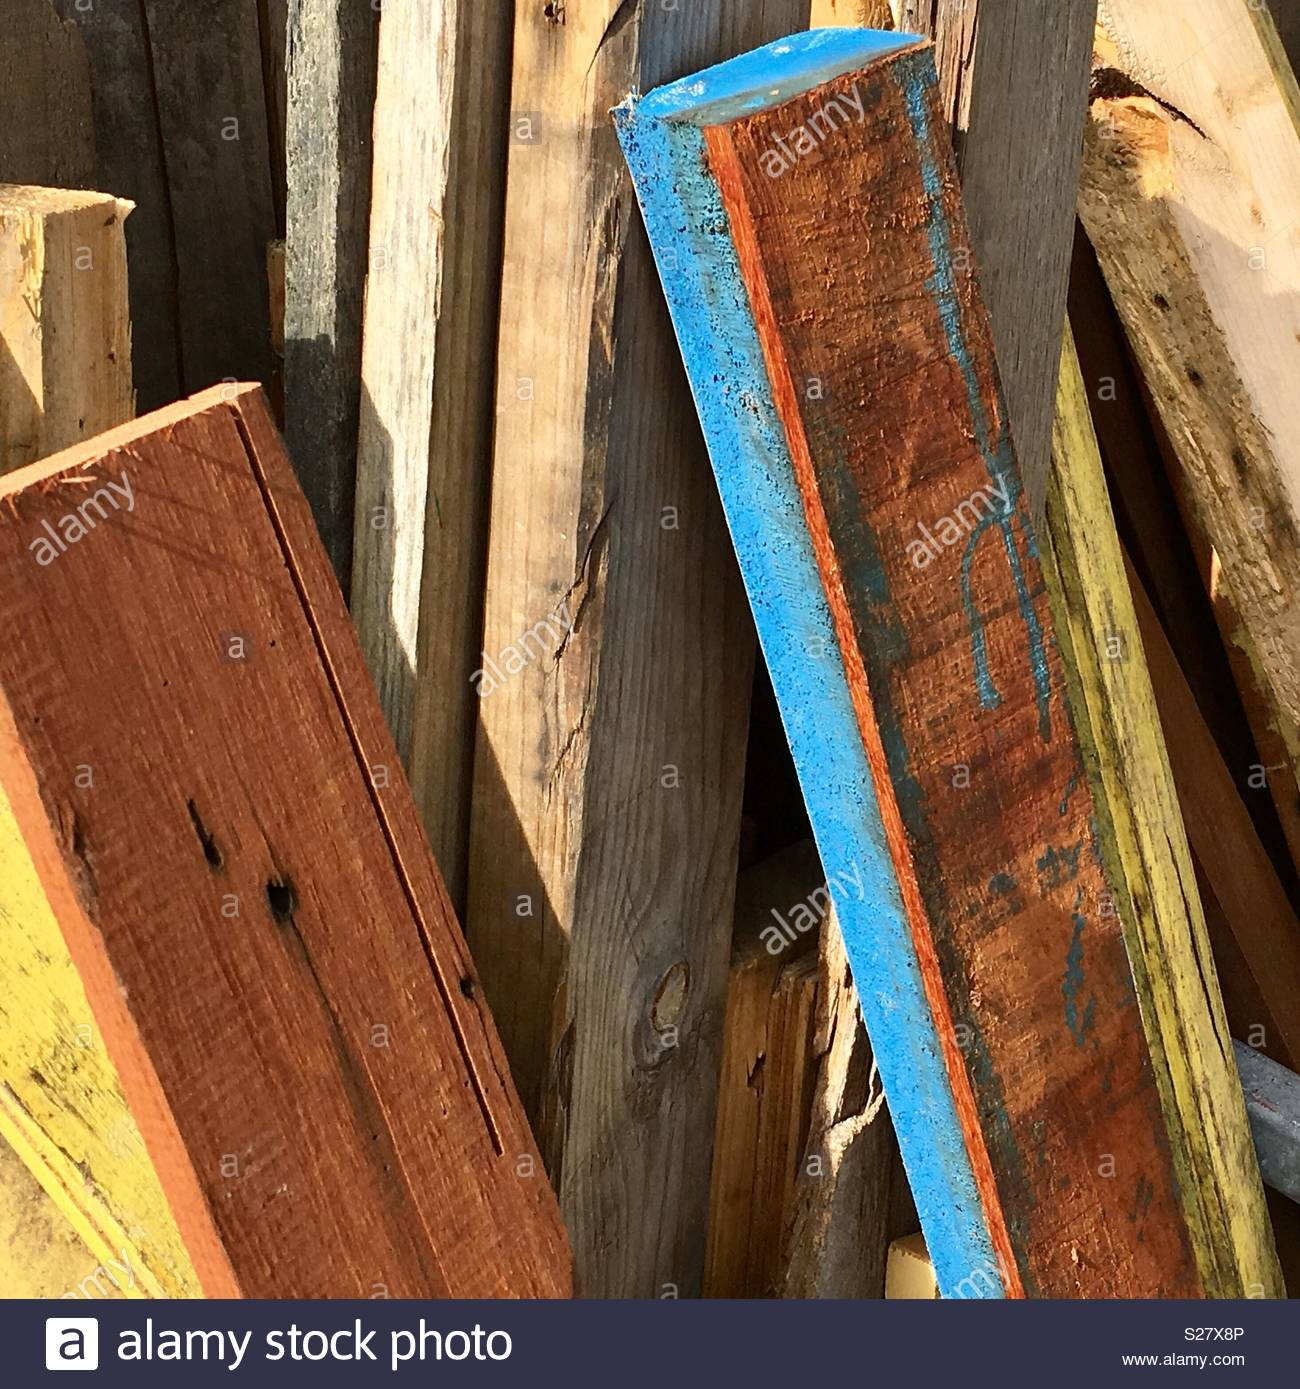 Colourful planks of wood - Stock Image